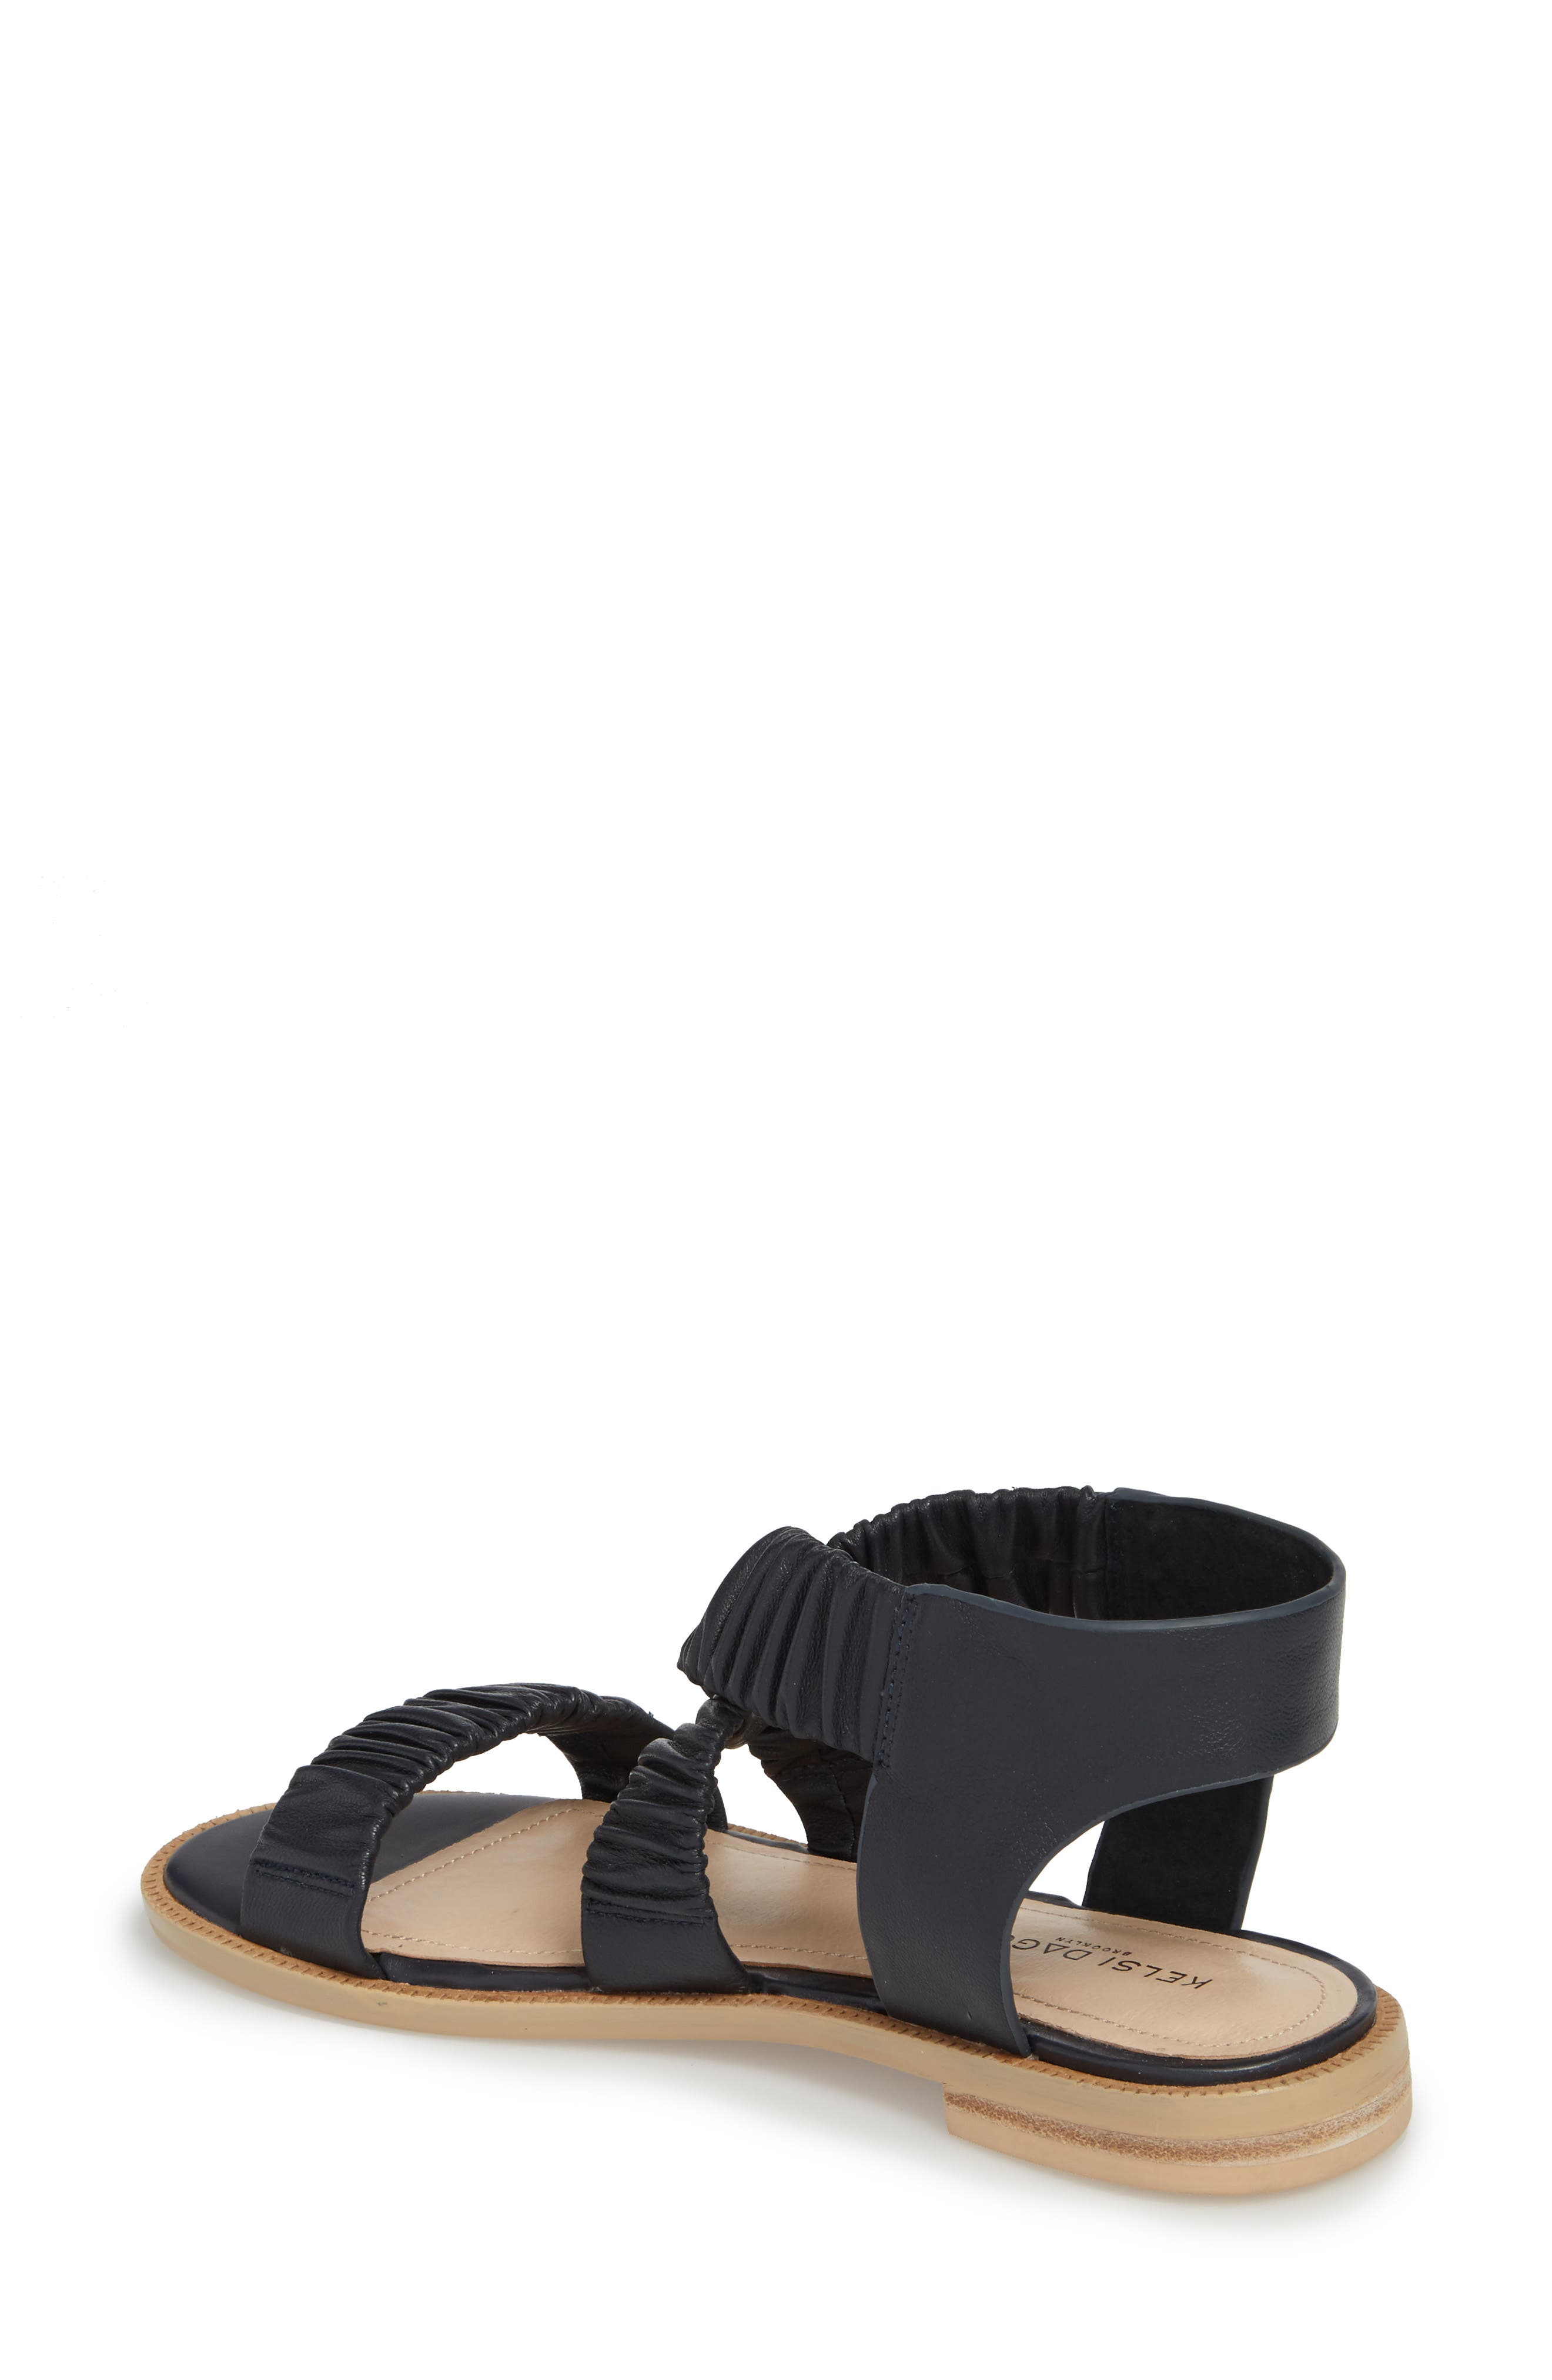 Ryder Pleated Flat Sandal,                             Alternate thumbnail 6, color,